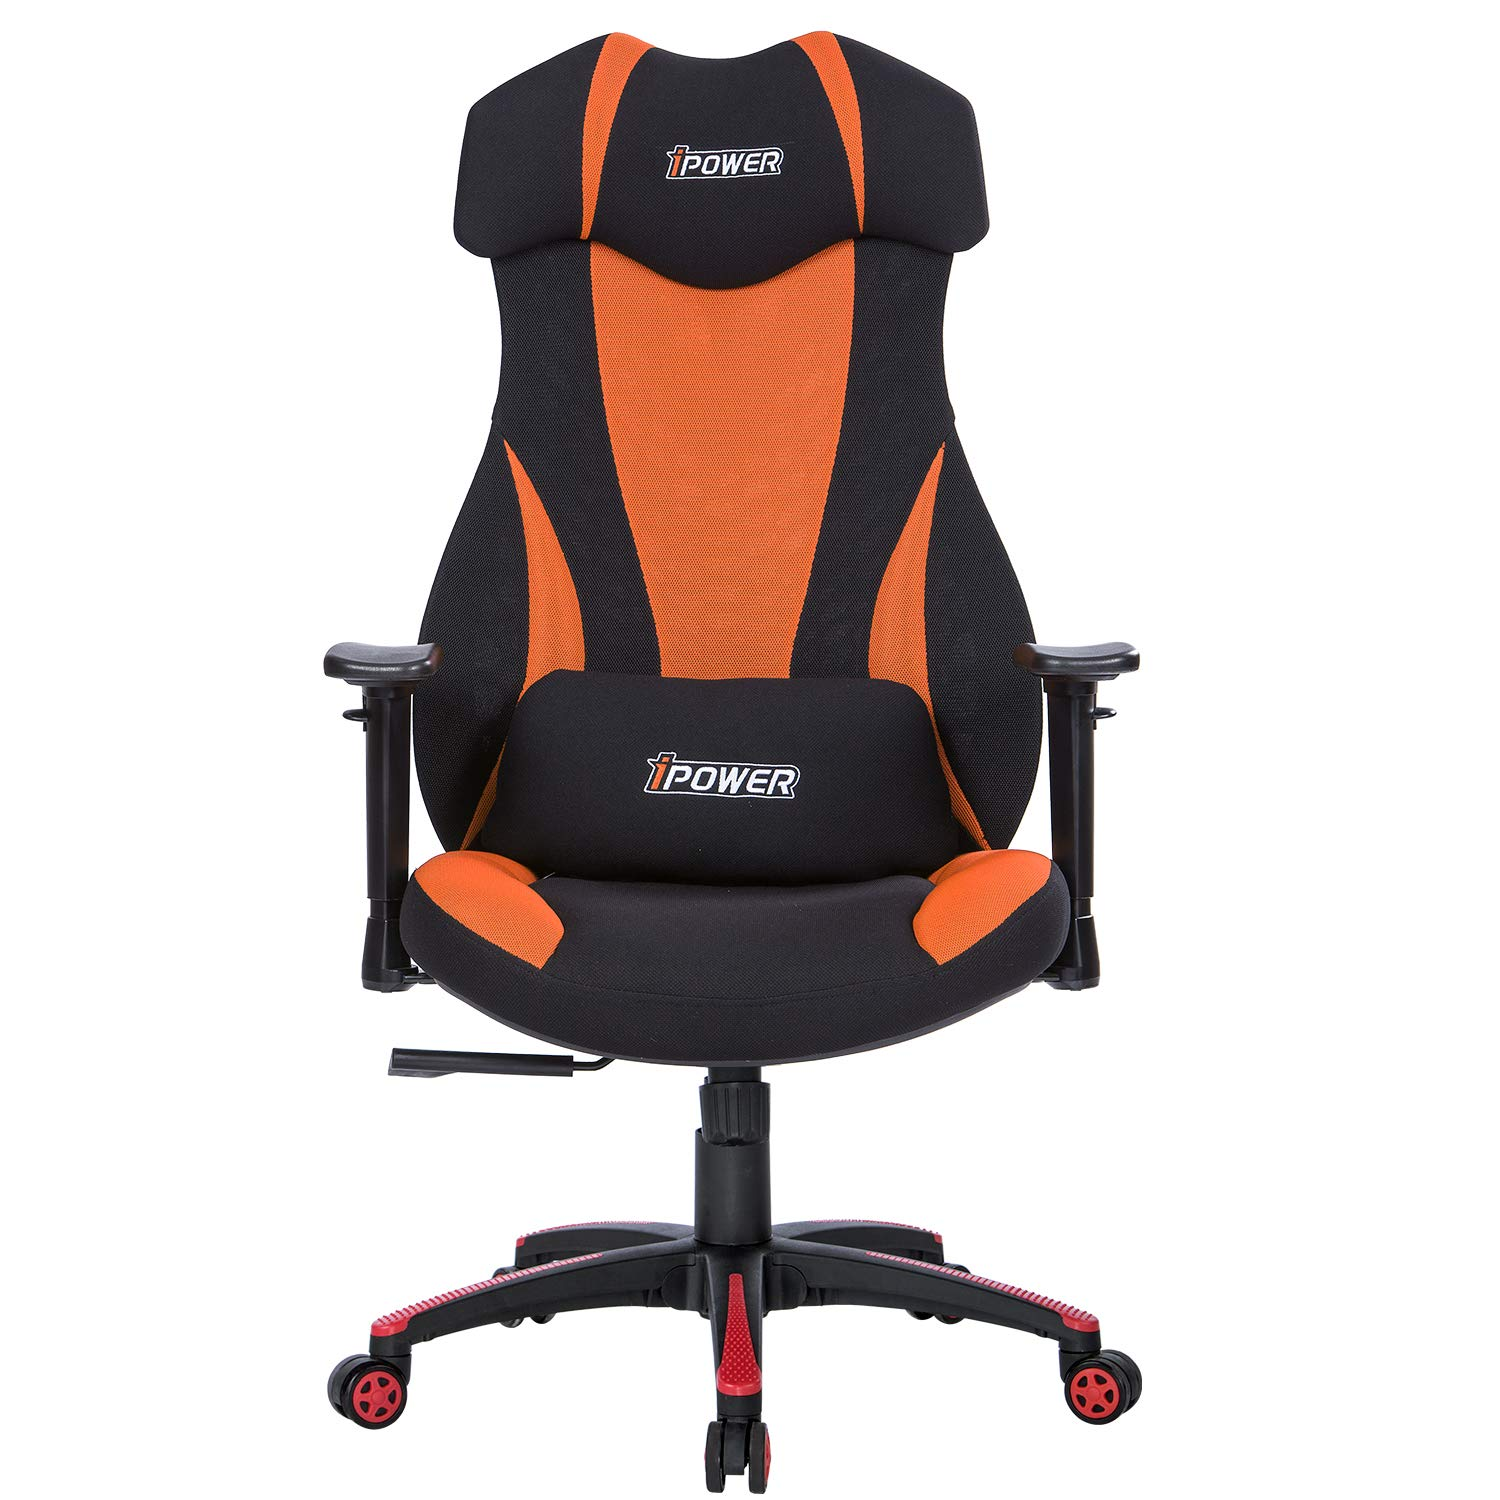 LIANFENG Gaming Office Chair, High-Back Racing Chair Mesh Chair Reclining Computer Desk Chair Ergonomic Executive Swivel Rolling Chair with Headrest Lumbar Support for Women, Men,Black Orange